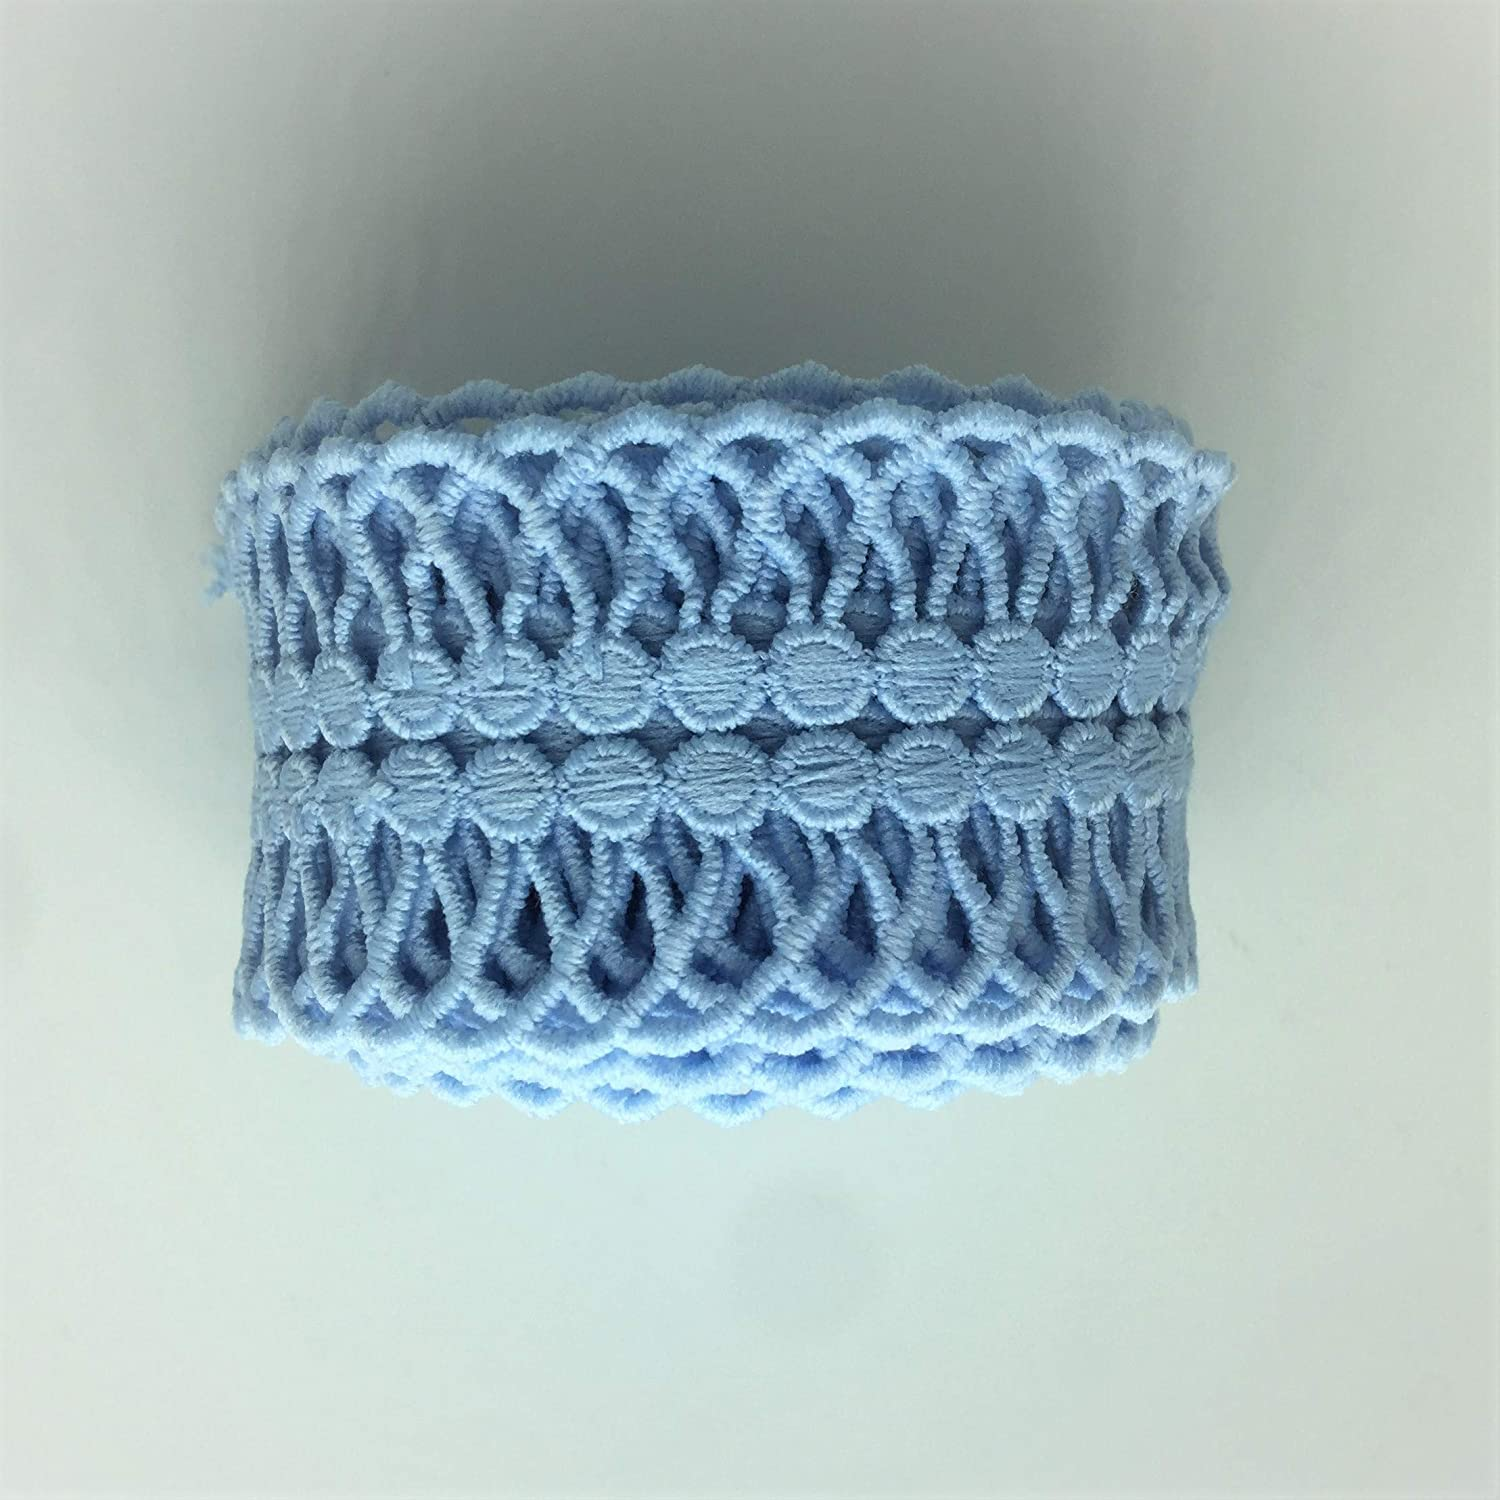 """Blue ELLA MAMA Embroidered Lace Trim Lace Ribbon 2/"""" x 3 YardsArch Vintage Pattern with Double Edge,for Home Decoration,Wedding Decoration,Party Decoration,DIY Sewing Craft etc"""